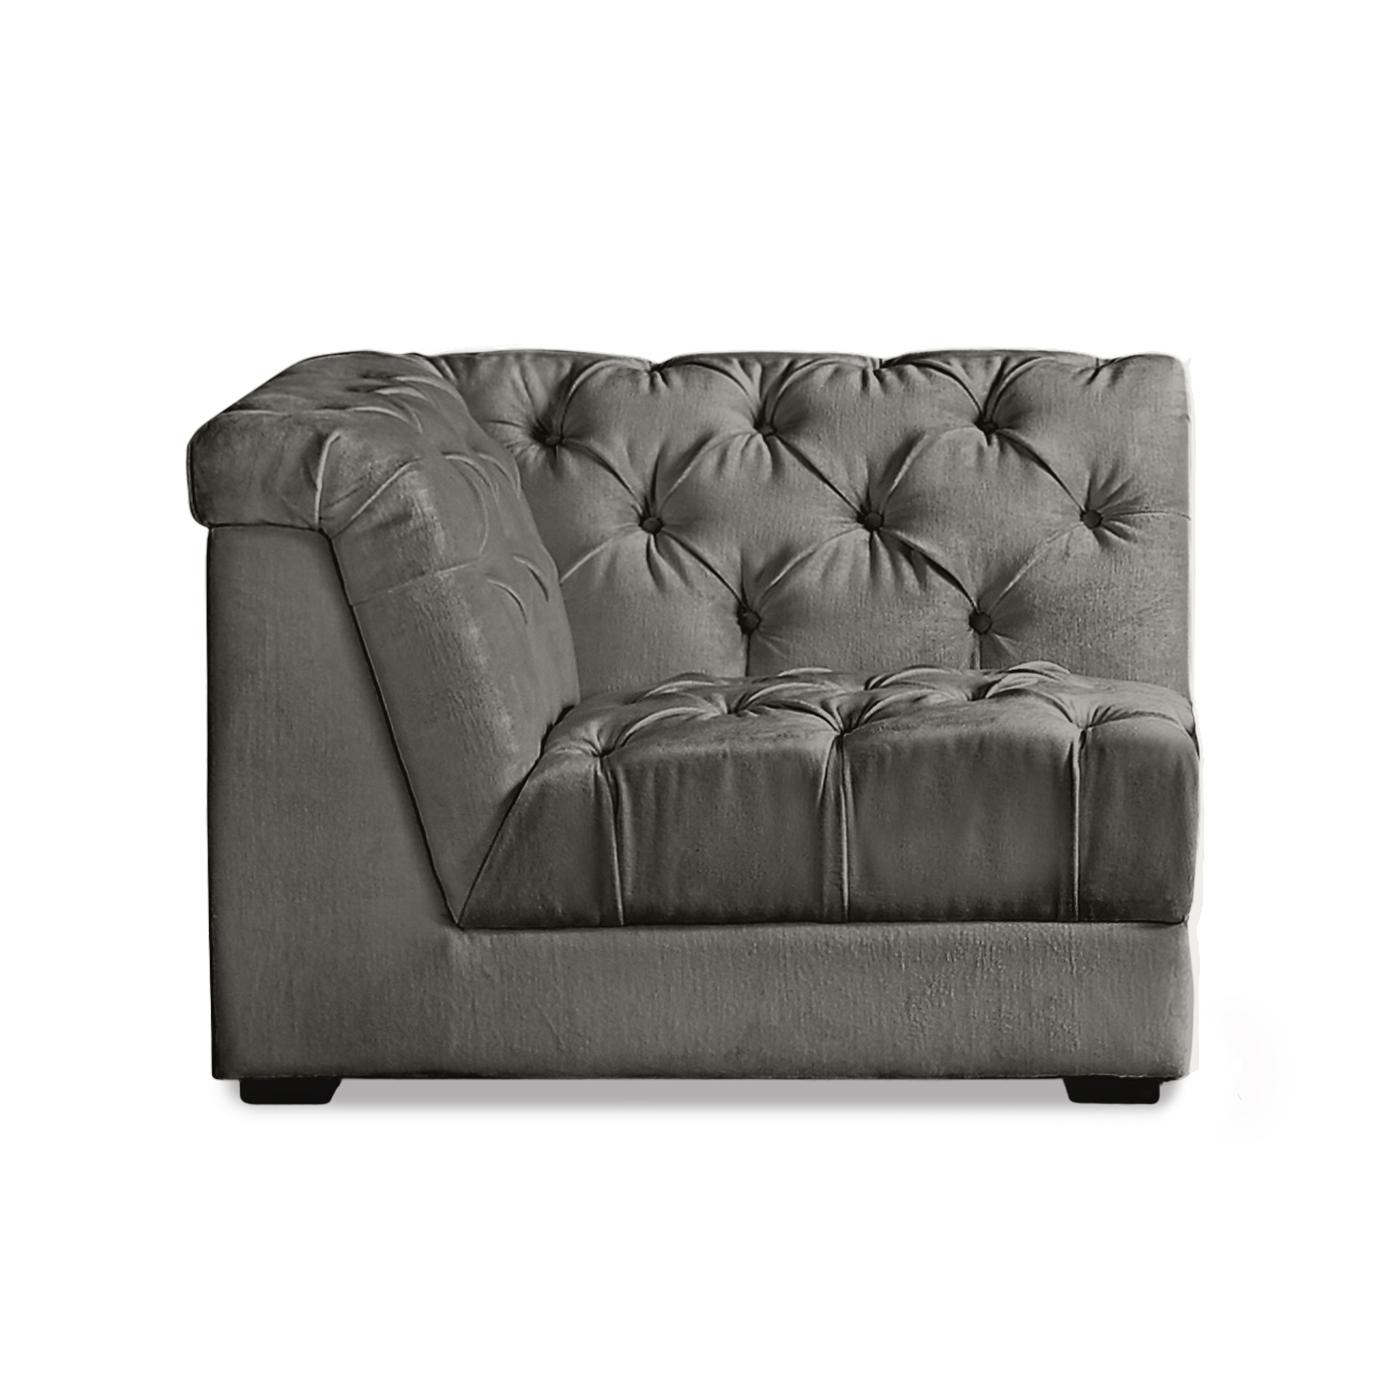 Ultra Charcoal Sectional Modular Sofa | Modern Furniture Pertaining To Modular Sofas (View 2 of 20)